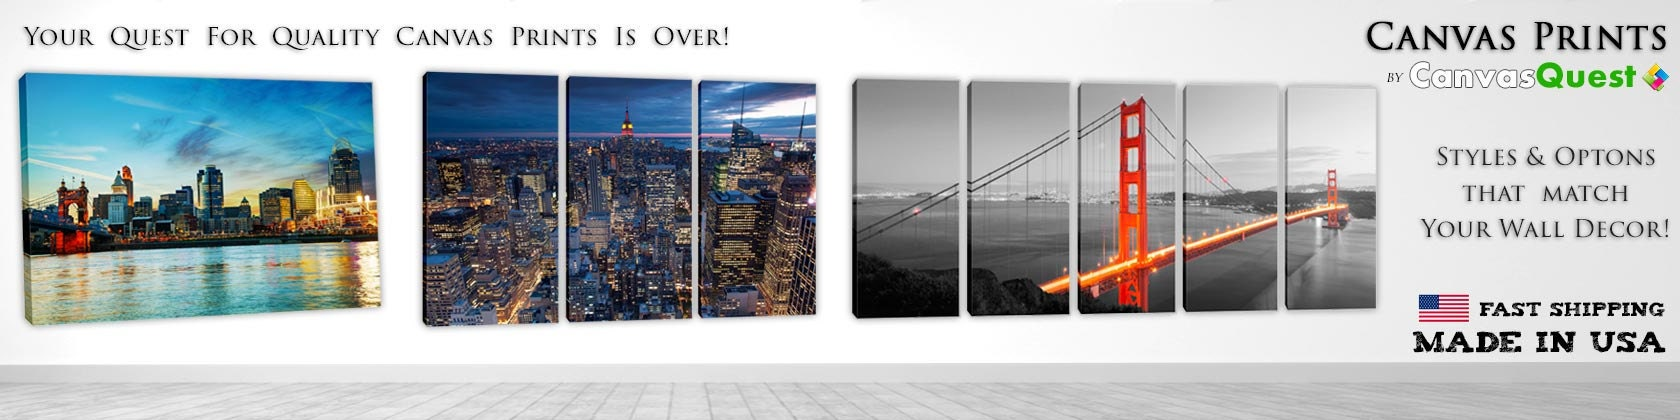 Canvas Prints Large Wall Art For Home Office By Canvasquest